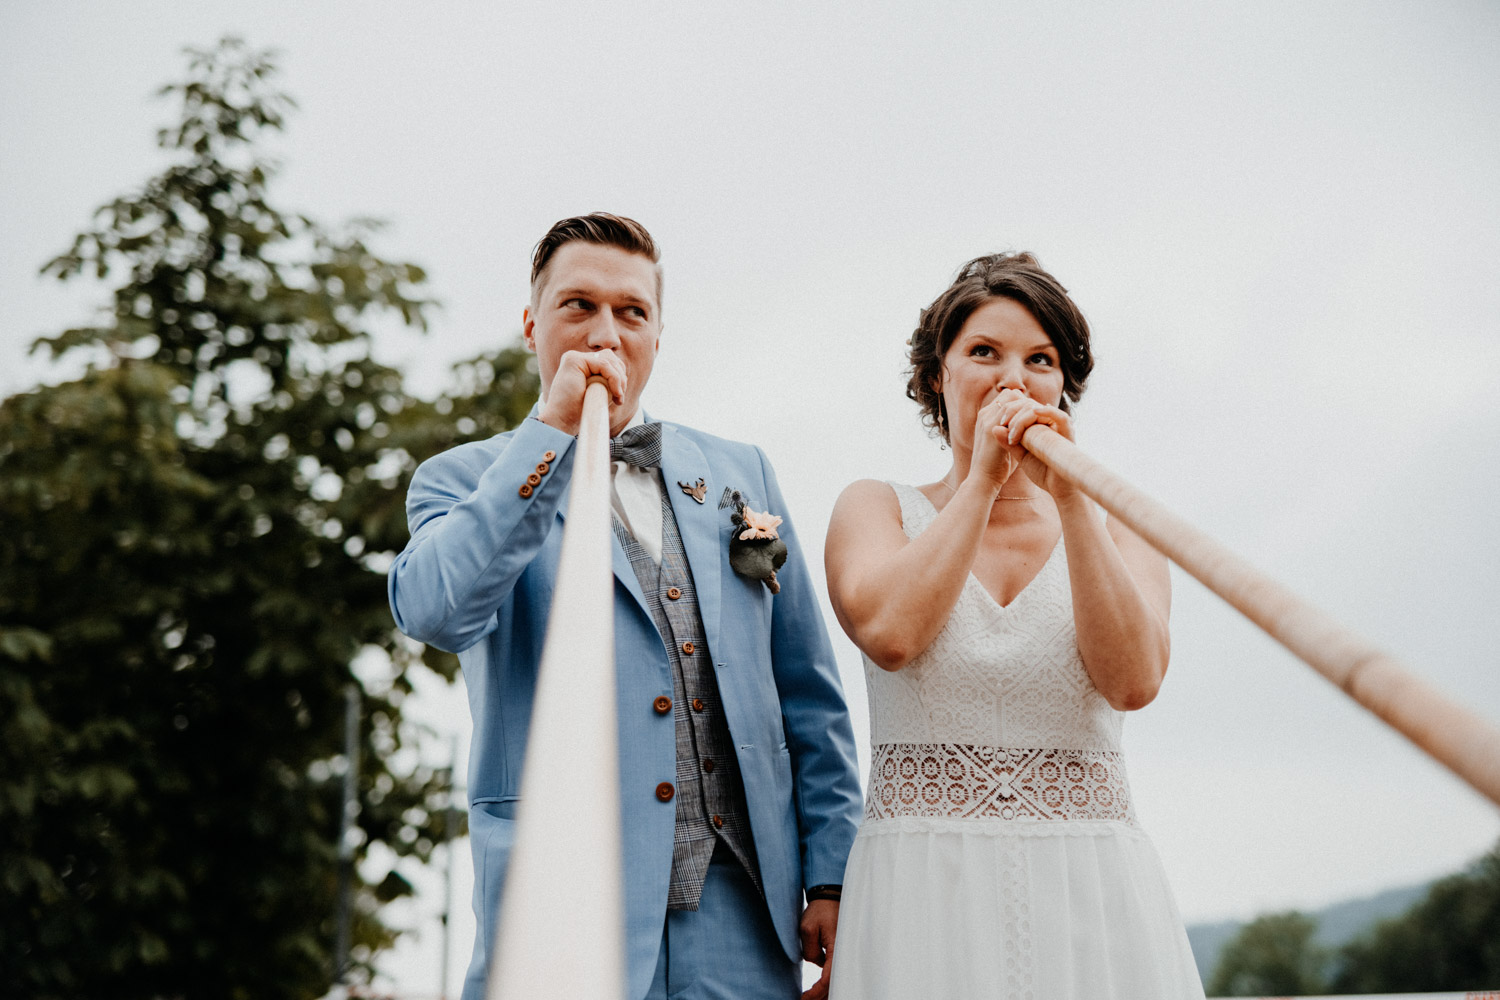 Vintage Industrial Bohemian Wedding in Switzerland wedding photographer elopement photographer